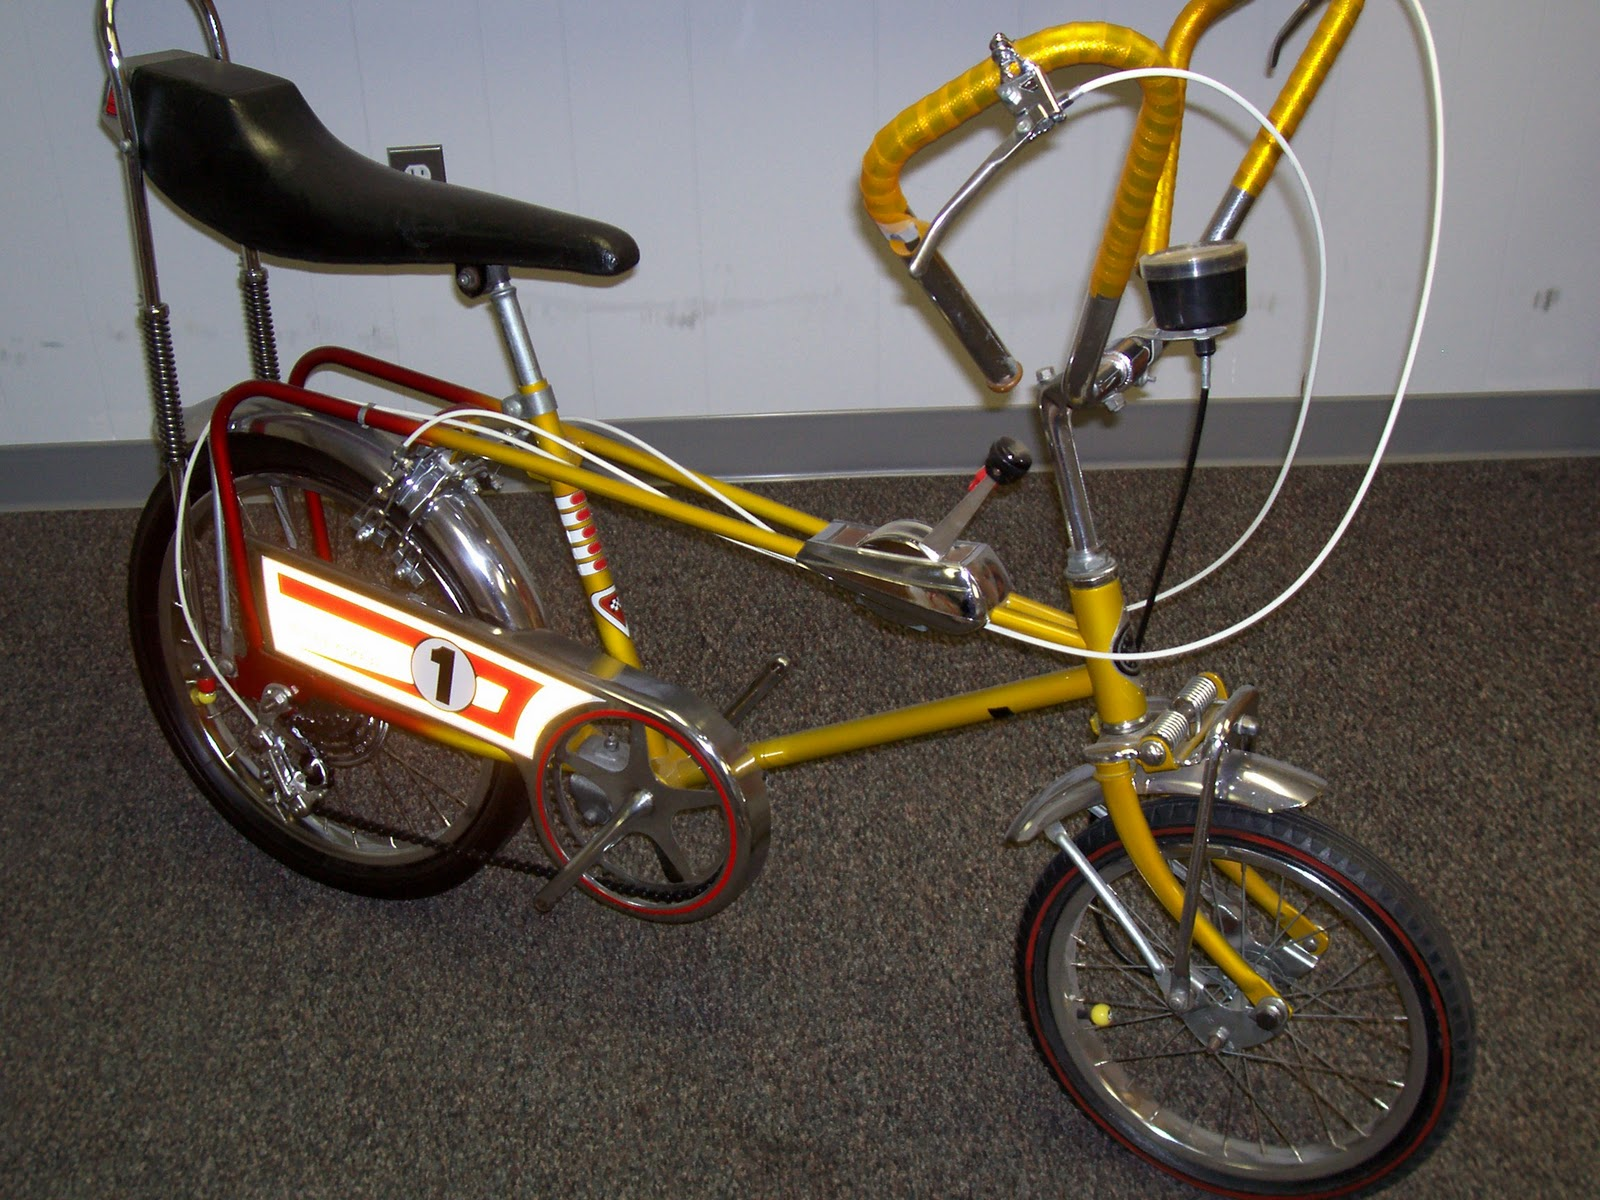 60bed4c812b the raleigh chopper blog steve: SEARS SCREAMER